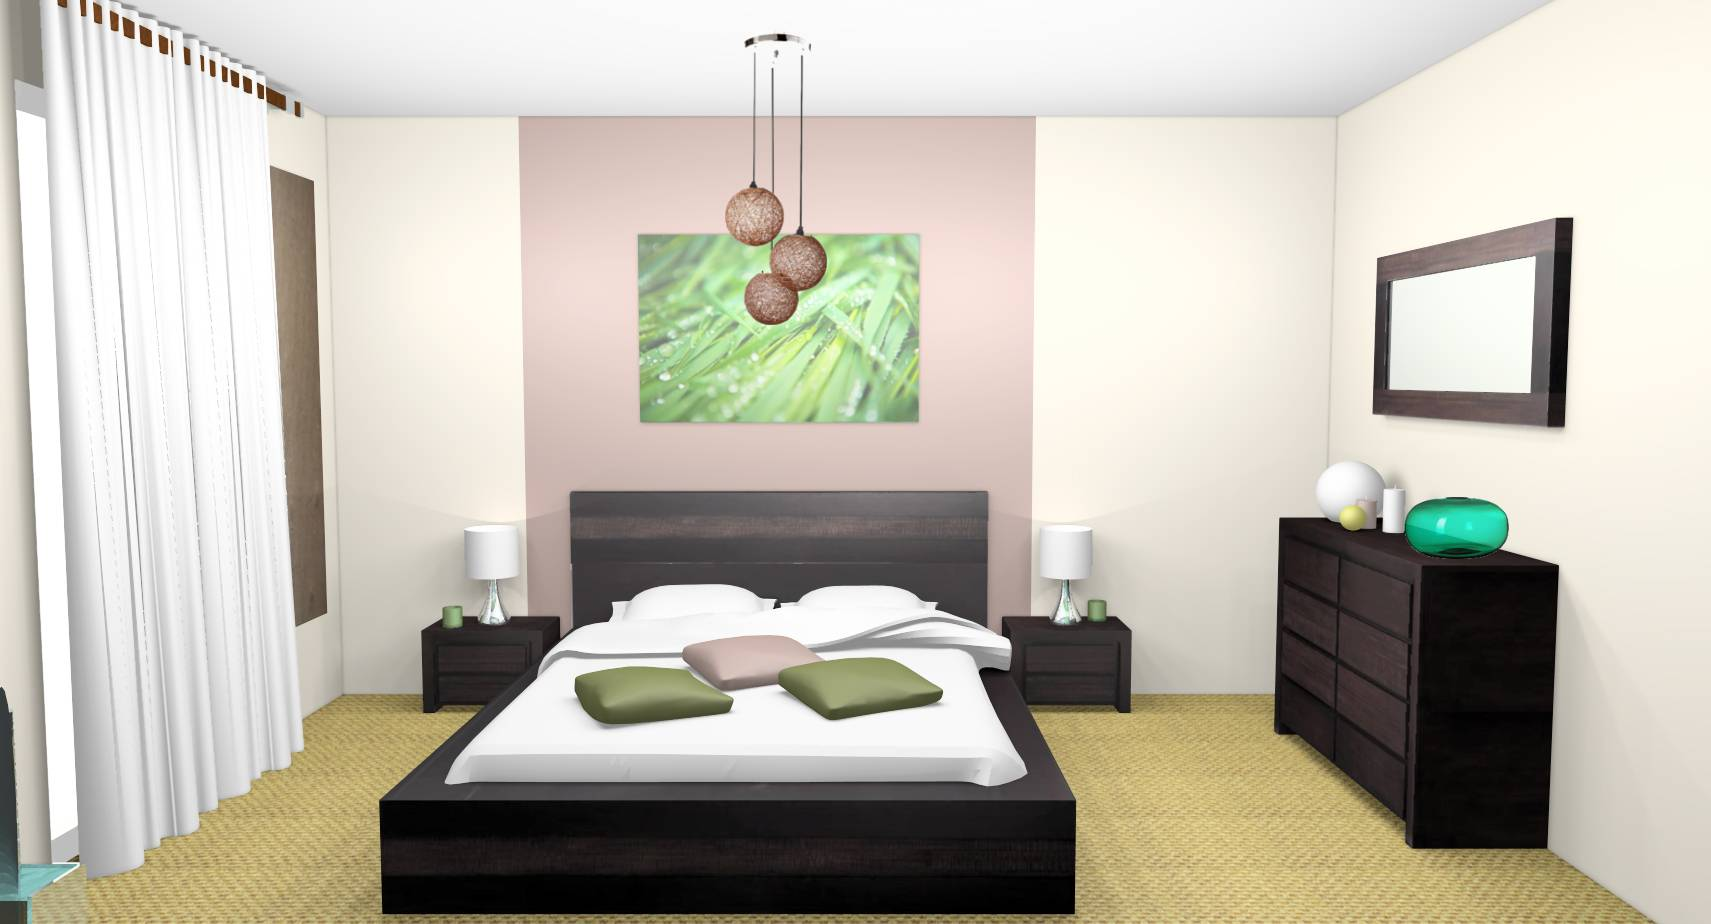 D co chambre zen adulte for Decoration chambre a coucher adulte moderne